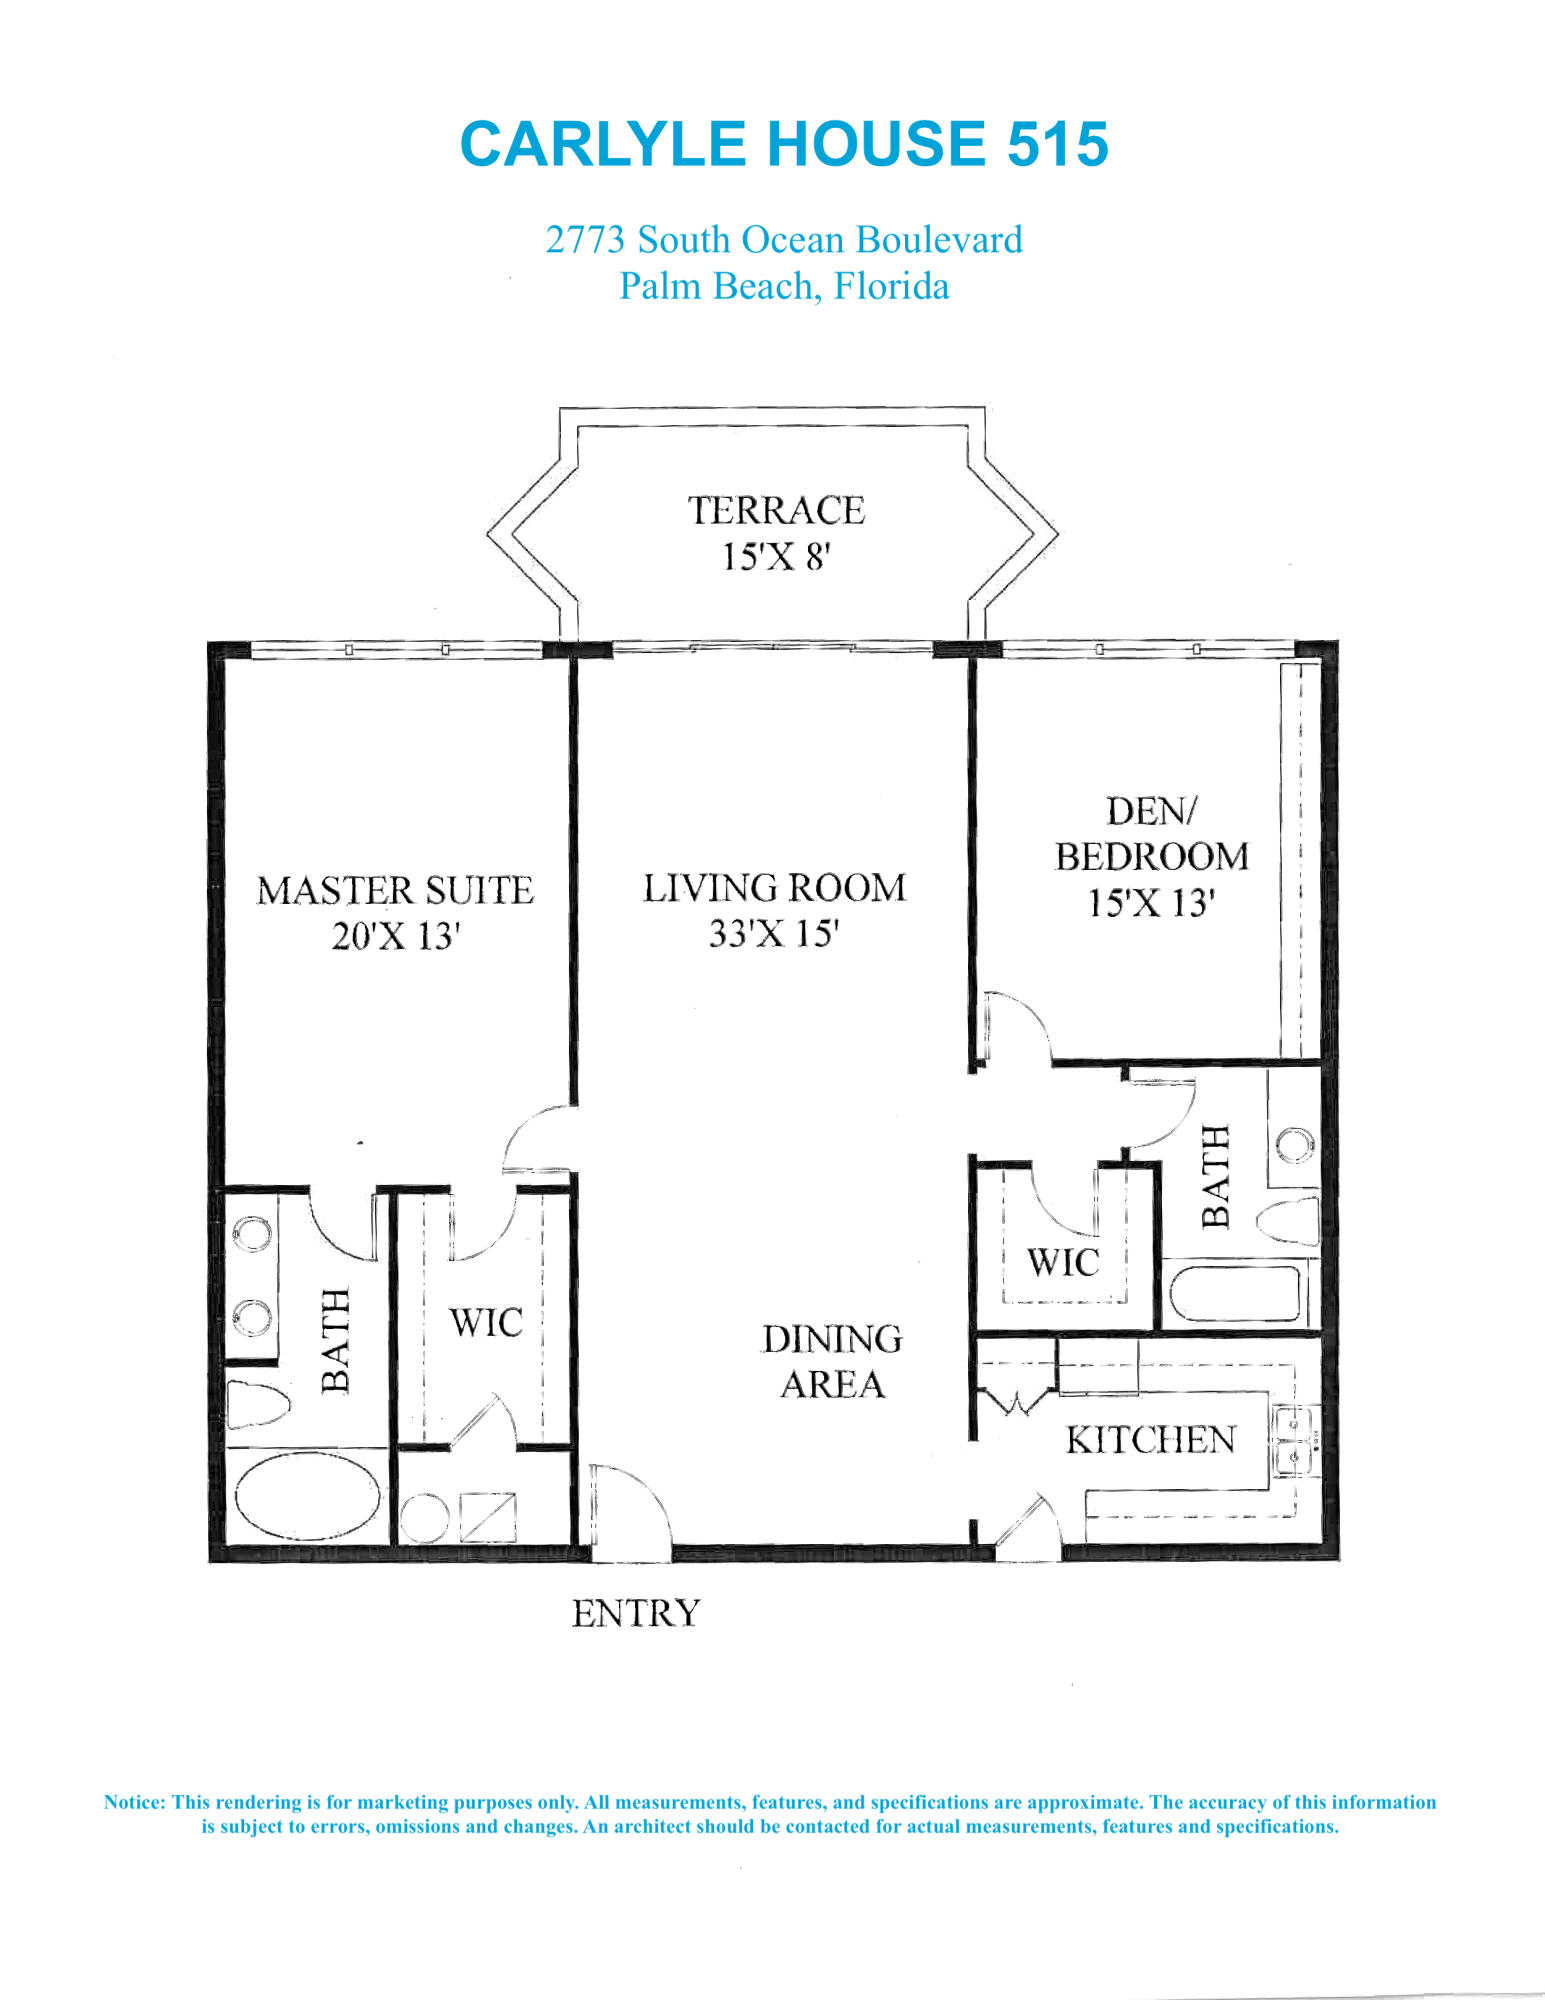 CARLYLE HOUSE HOMES FOR SALE